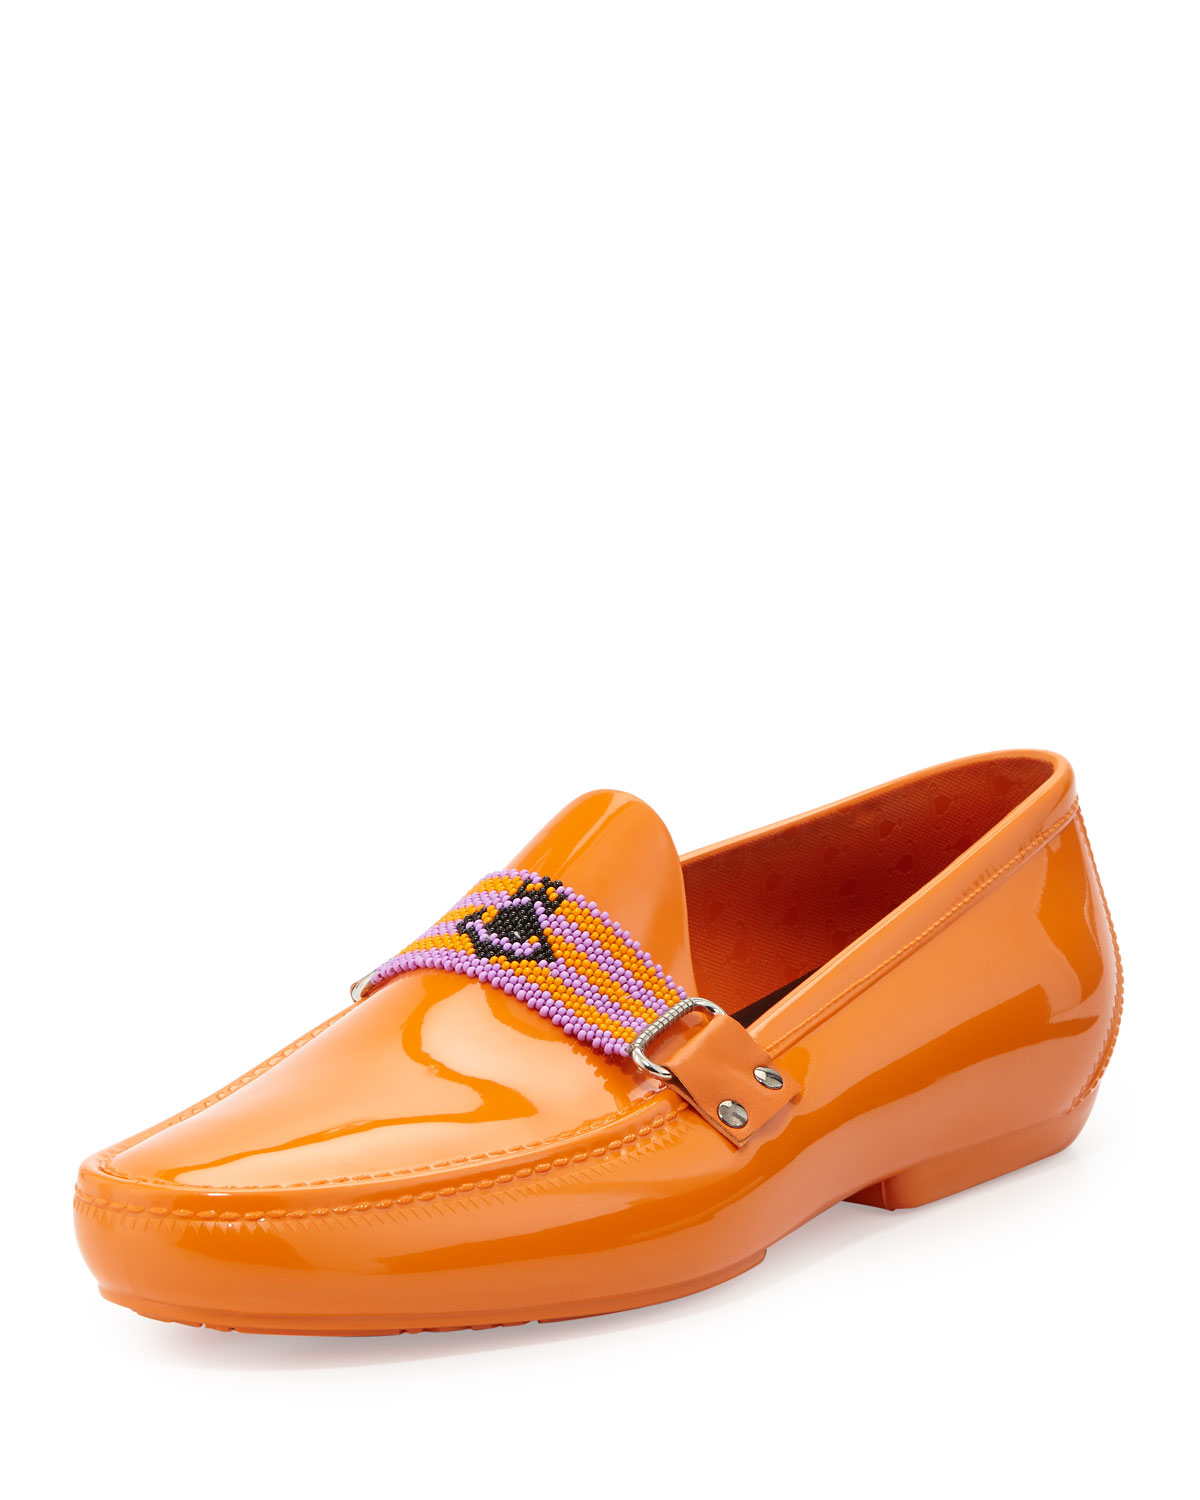 Vivienne Westwood PVC Beaded-Strap Moccasin, Orange